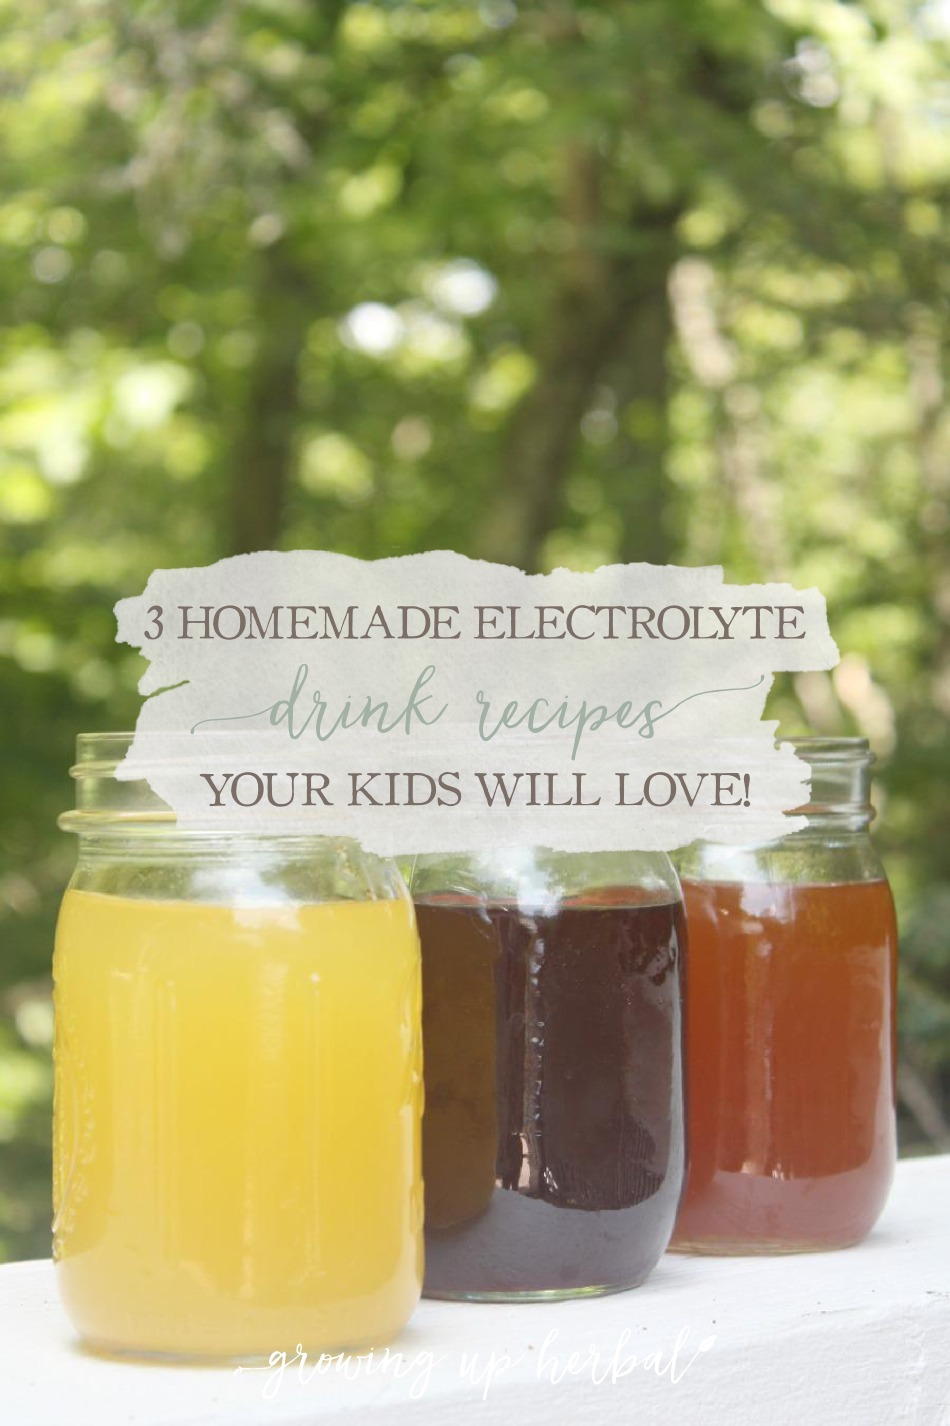 3 Homemade Electrolyte Drink Recipes Your Kids Will Love | Growing Up Herbal | Try these homemade electrolyte drink recipes the next time your kiddo needs to stay hydrated naturally! They taste great!